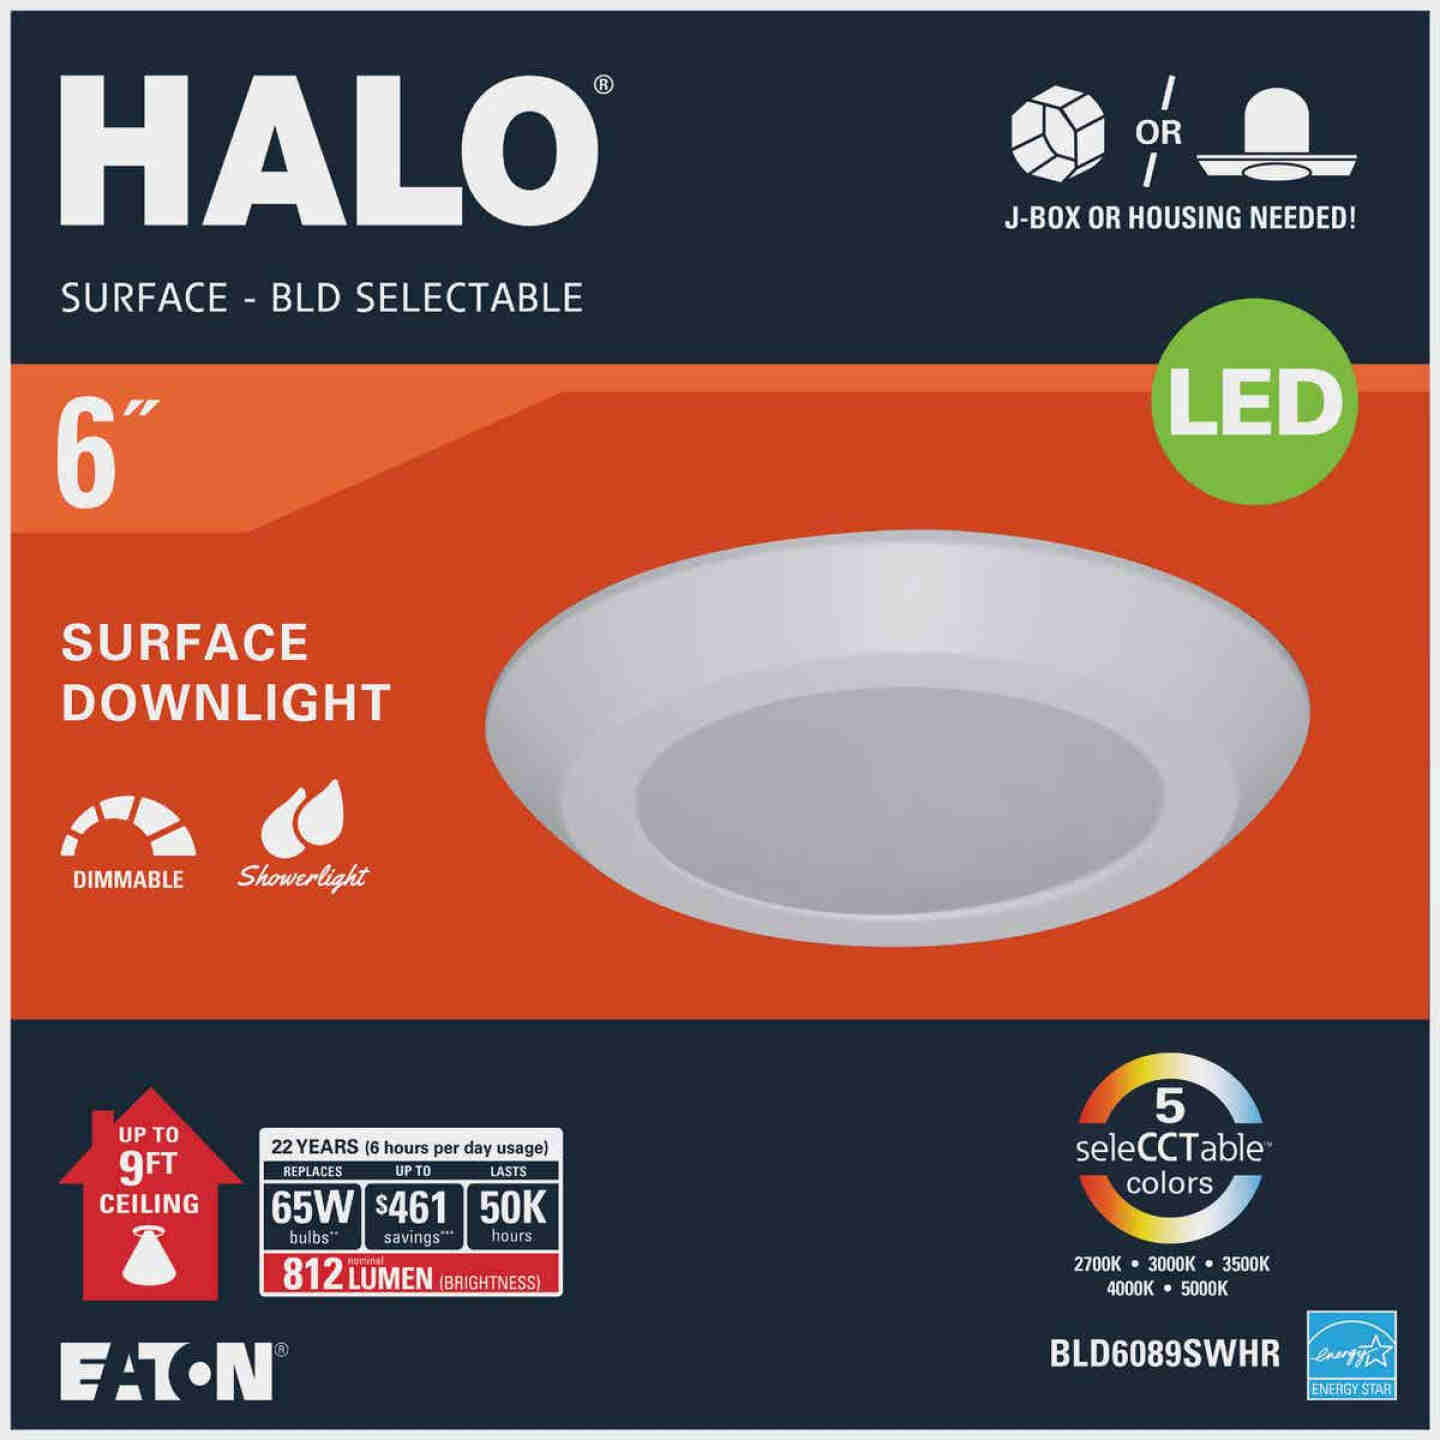 Halo 6 In. Retrofit Flush Mount Selectable Color Temperature LED Recessed Light Kit, 812 Lm. Image 2